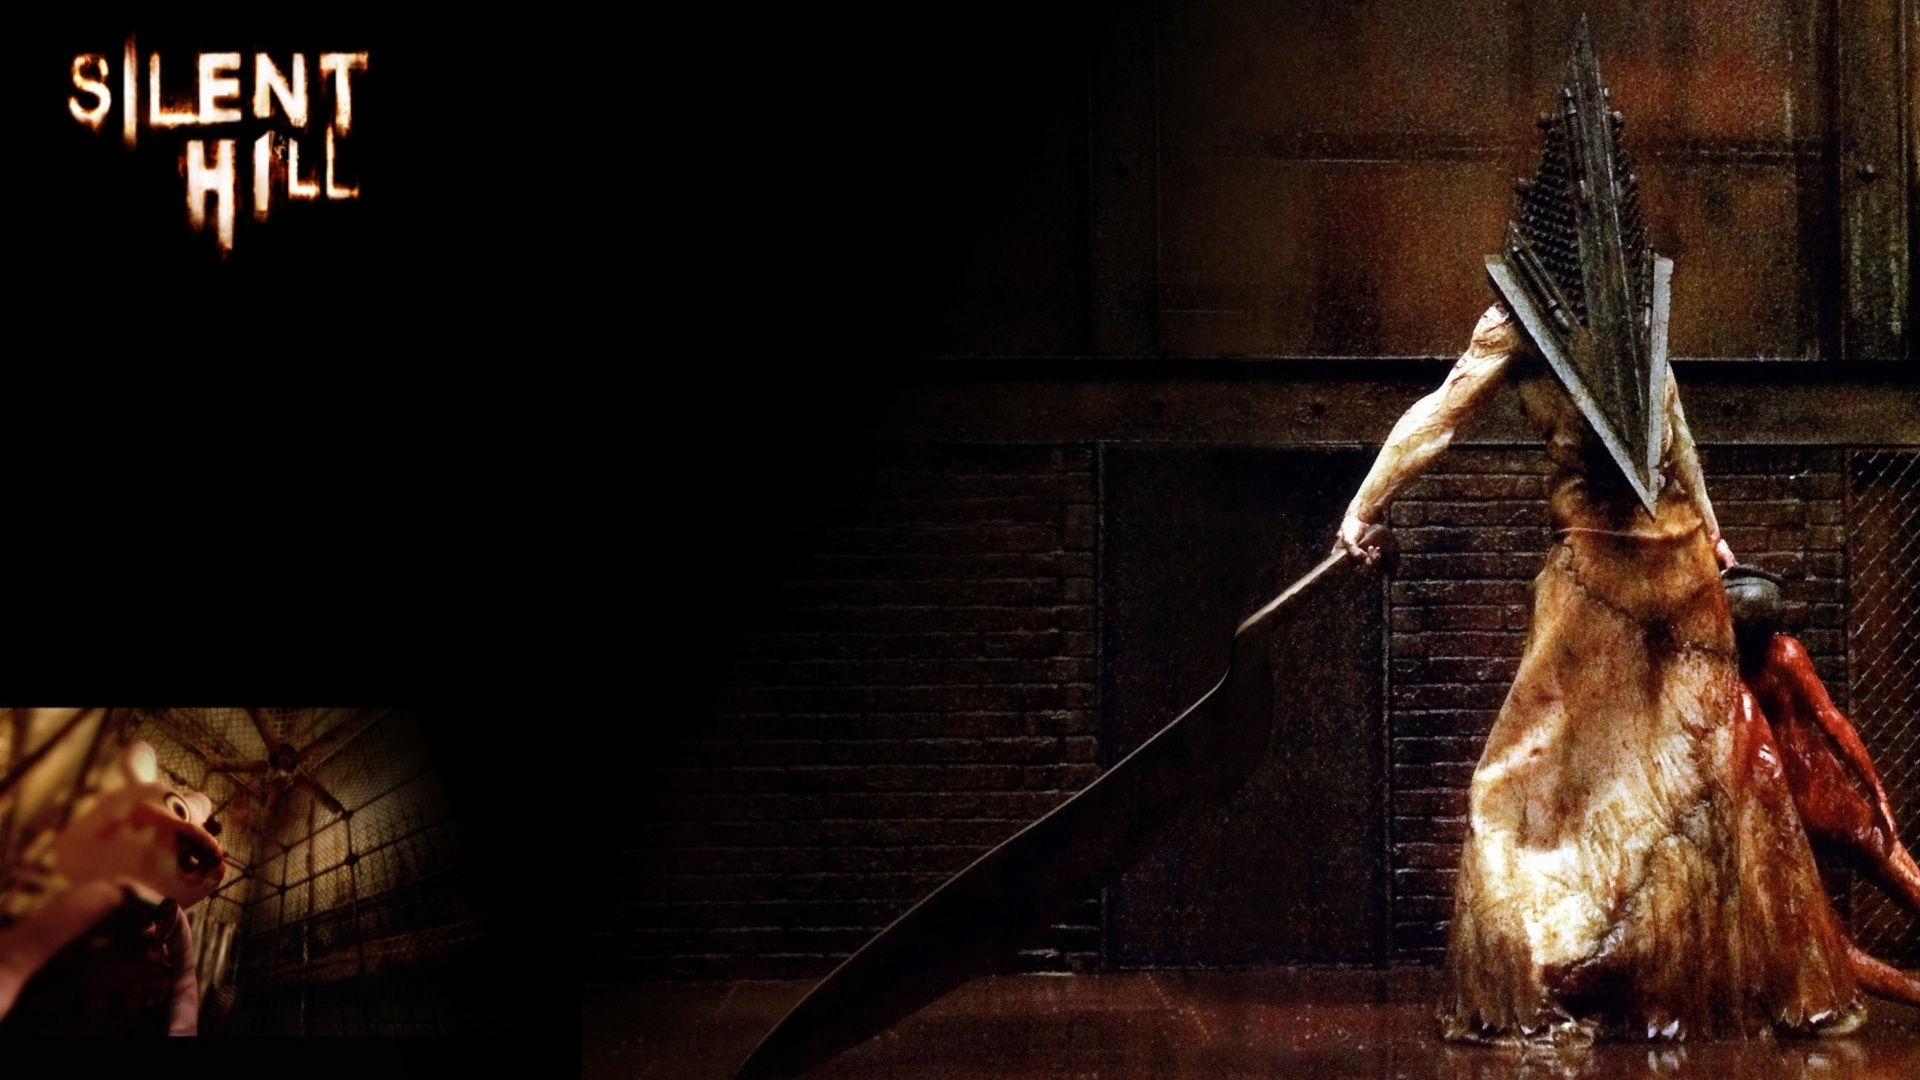 Silent Hill Images Silent Hill Wallpapers Hd Wallpaper And